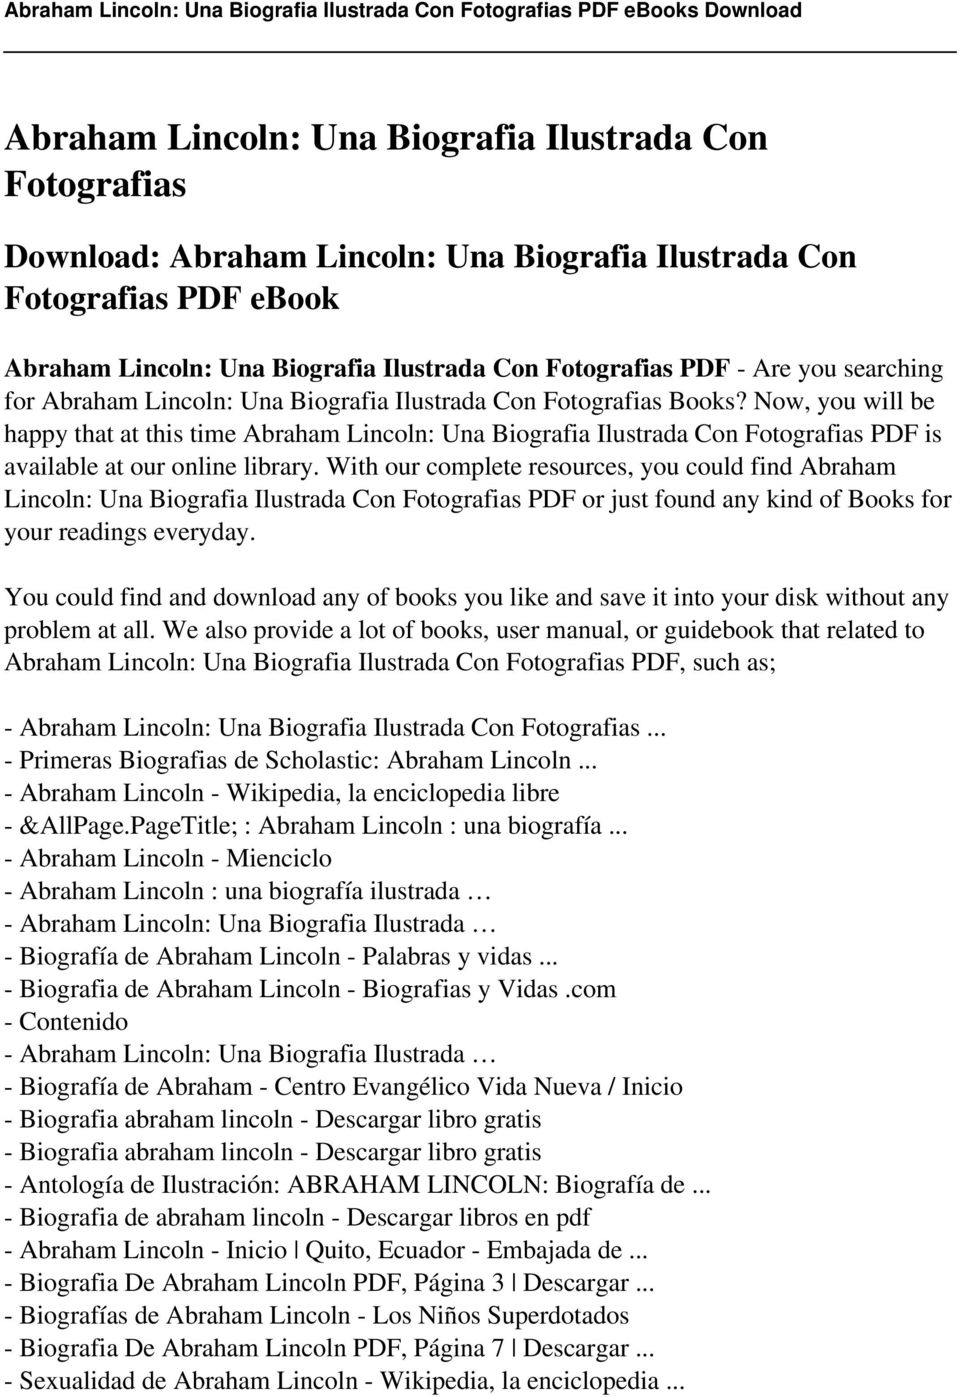 Now, you will be happy that at this time Abraham Lincoln: Una Biografia Ilustrada Con Fotografias PDF is available at our online library.